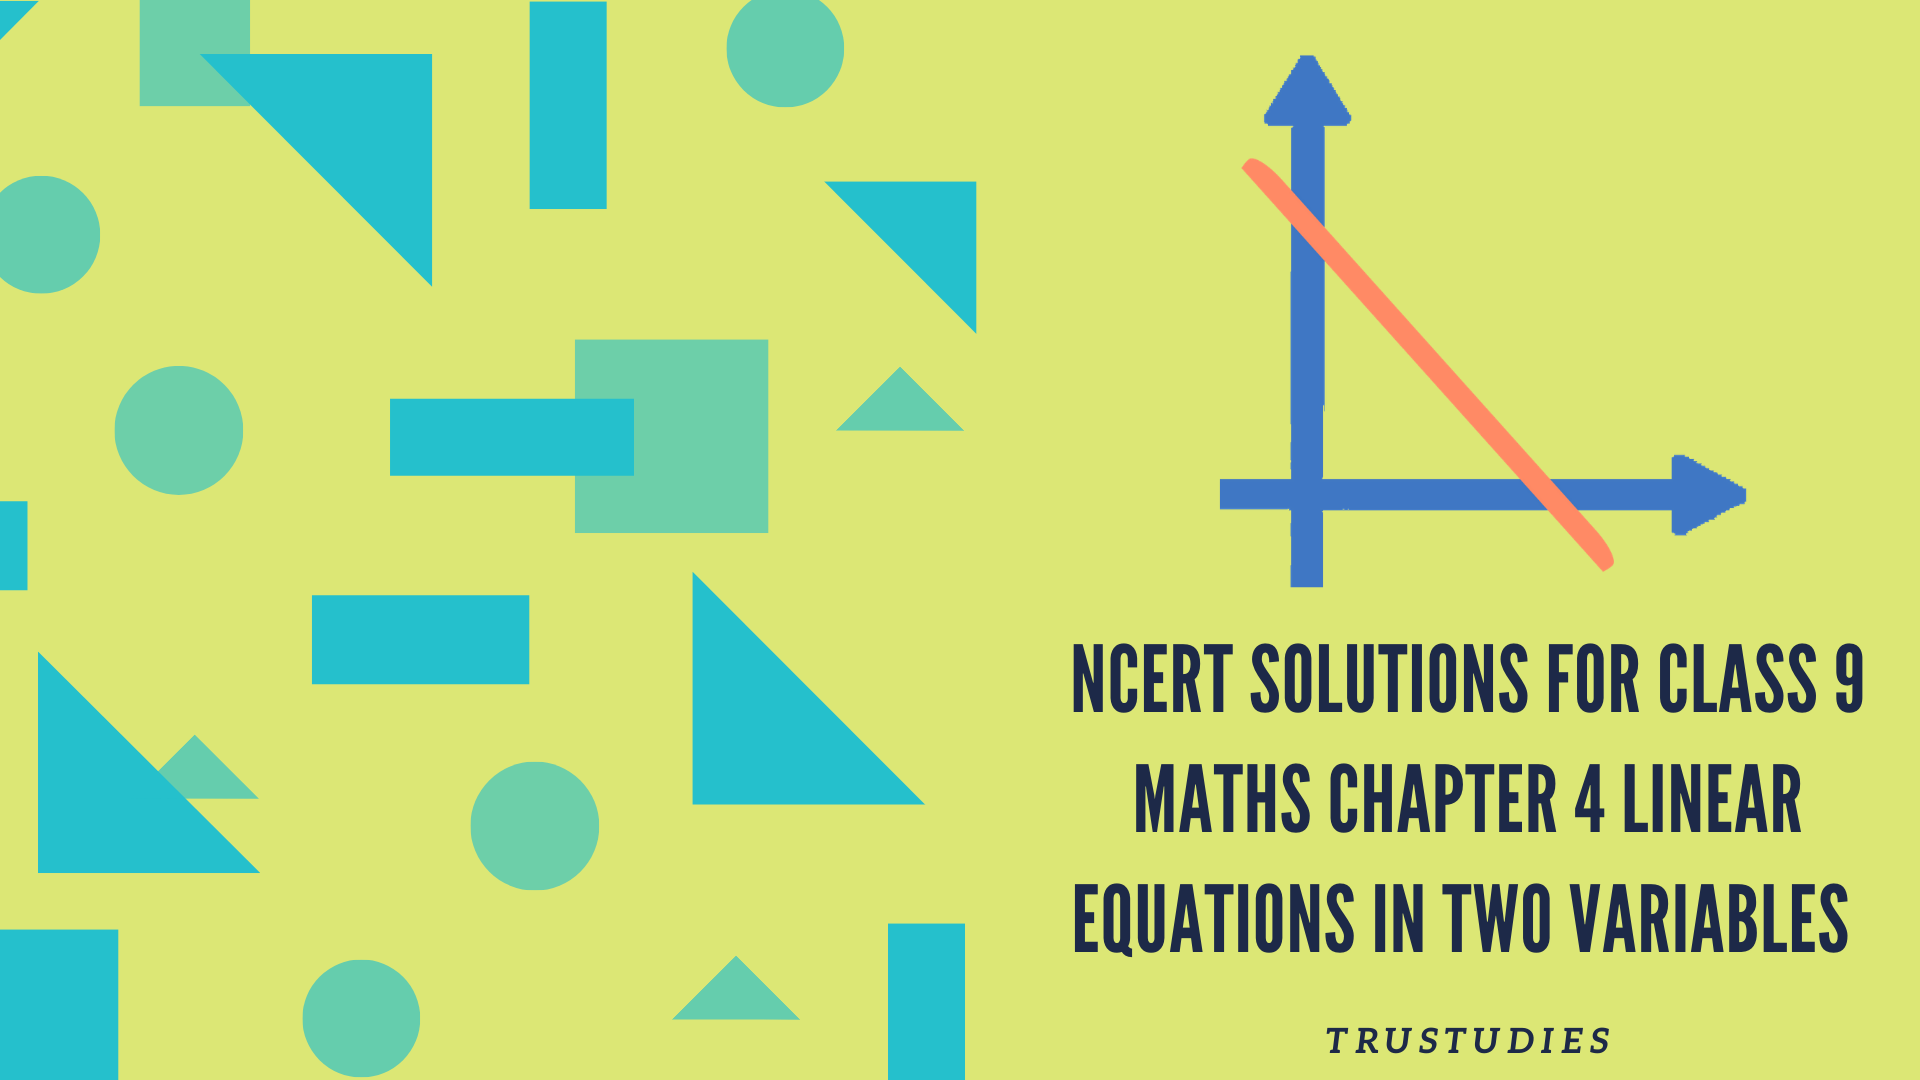 NCERT solutions for class 9 maths chapter 4 linear equations in two variables banner image